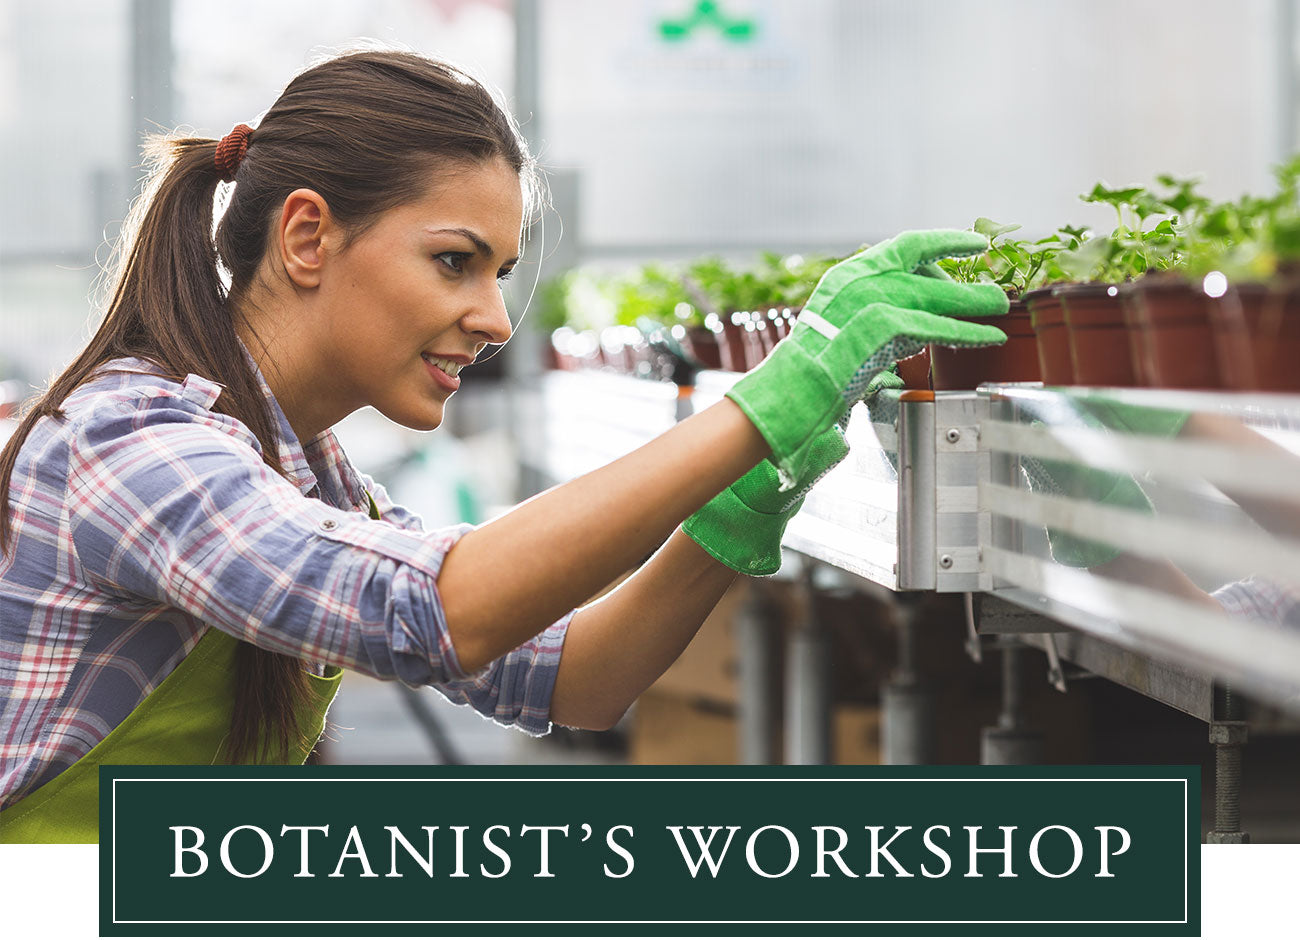 Botanist Workshop